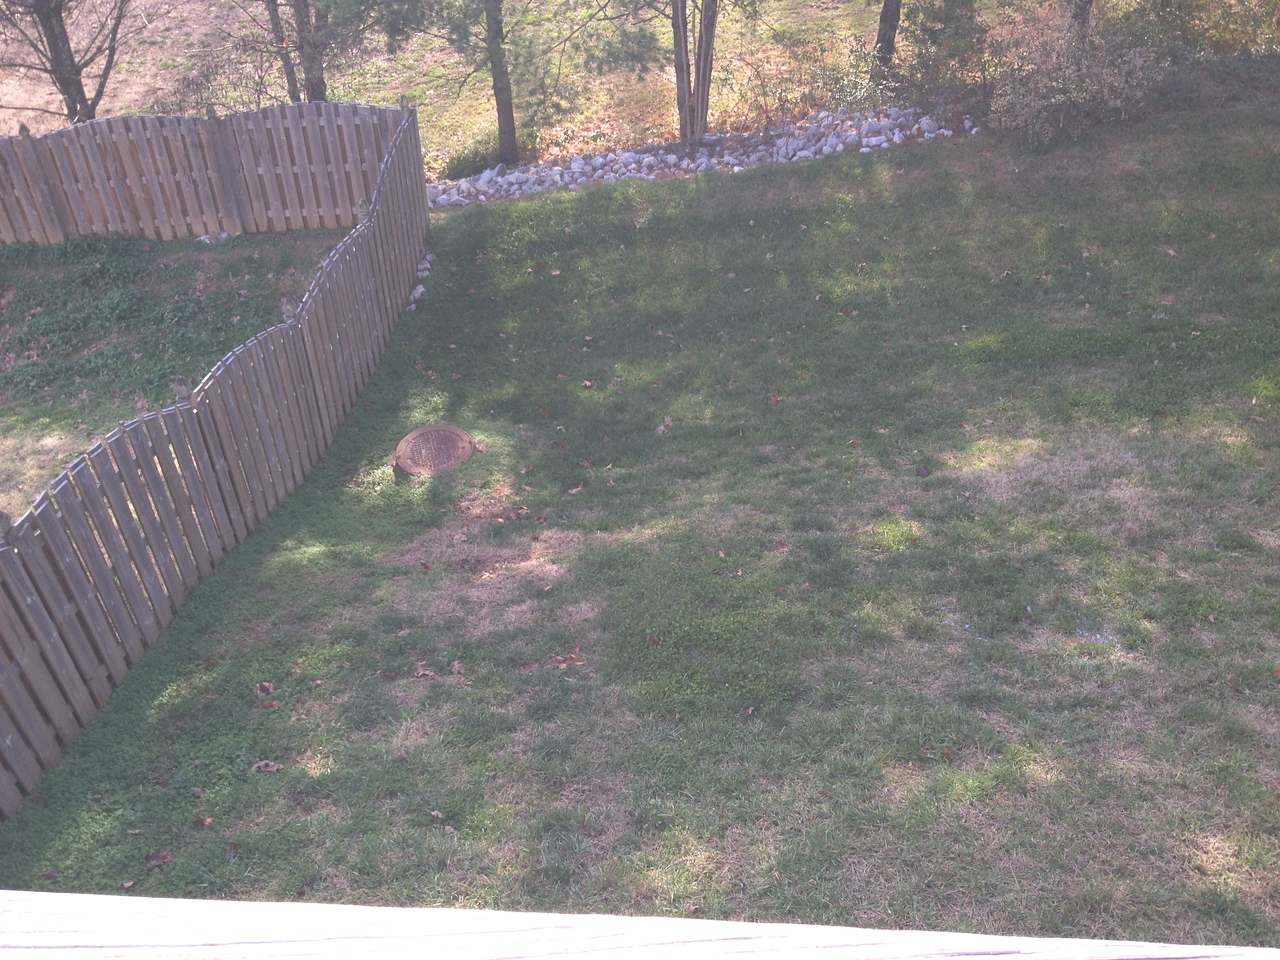 Backyard is also sloped but not so drastically